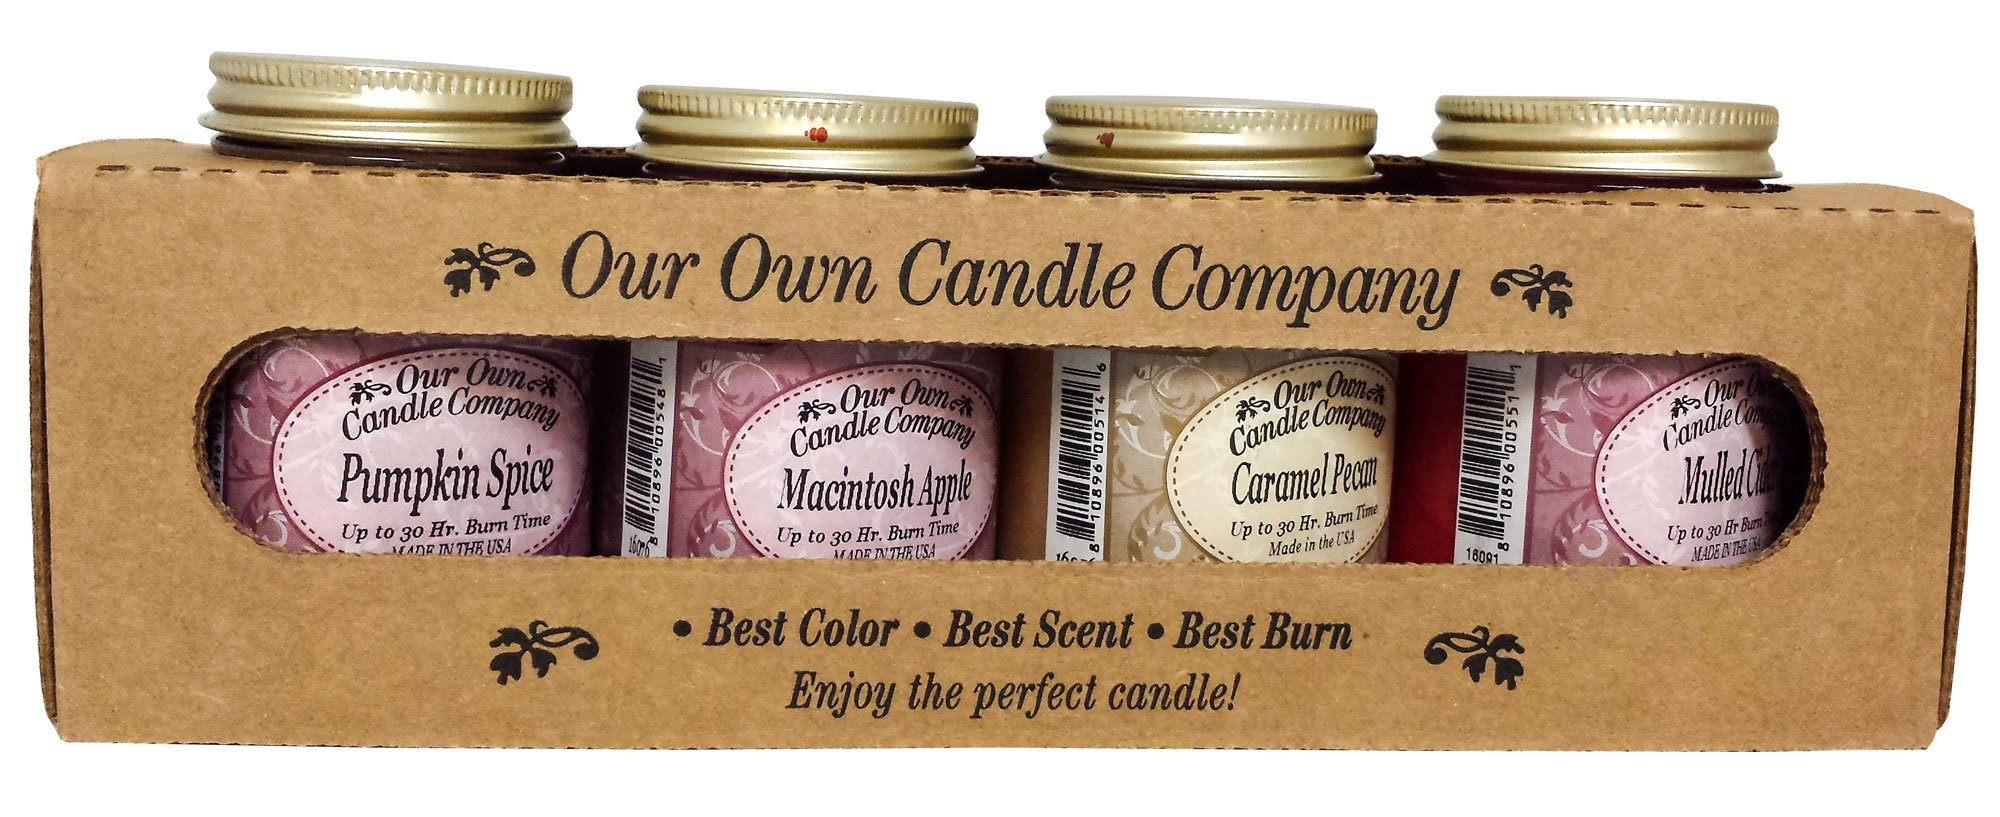 Our Own Candle Company 4 Pack Fall Assortment Mini Mason Jar Candles - 3.5 Oz Caramel Pecan, 3.5 Oz Mulled Cider, 3.5 Oz Pumpkin Spice, 3.5 Oz Macintosh Apple, By